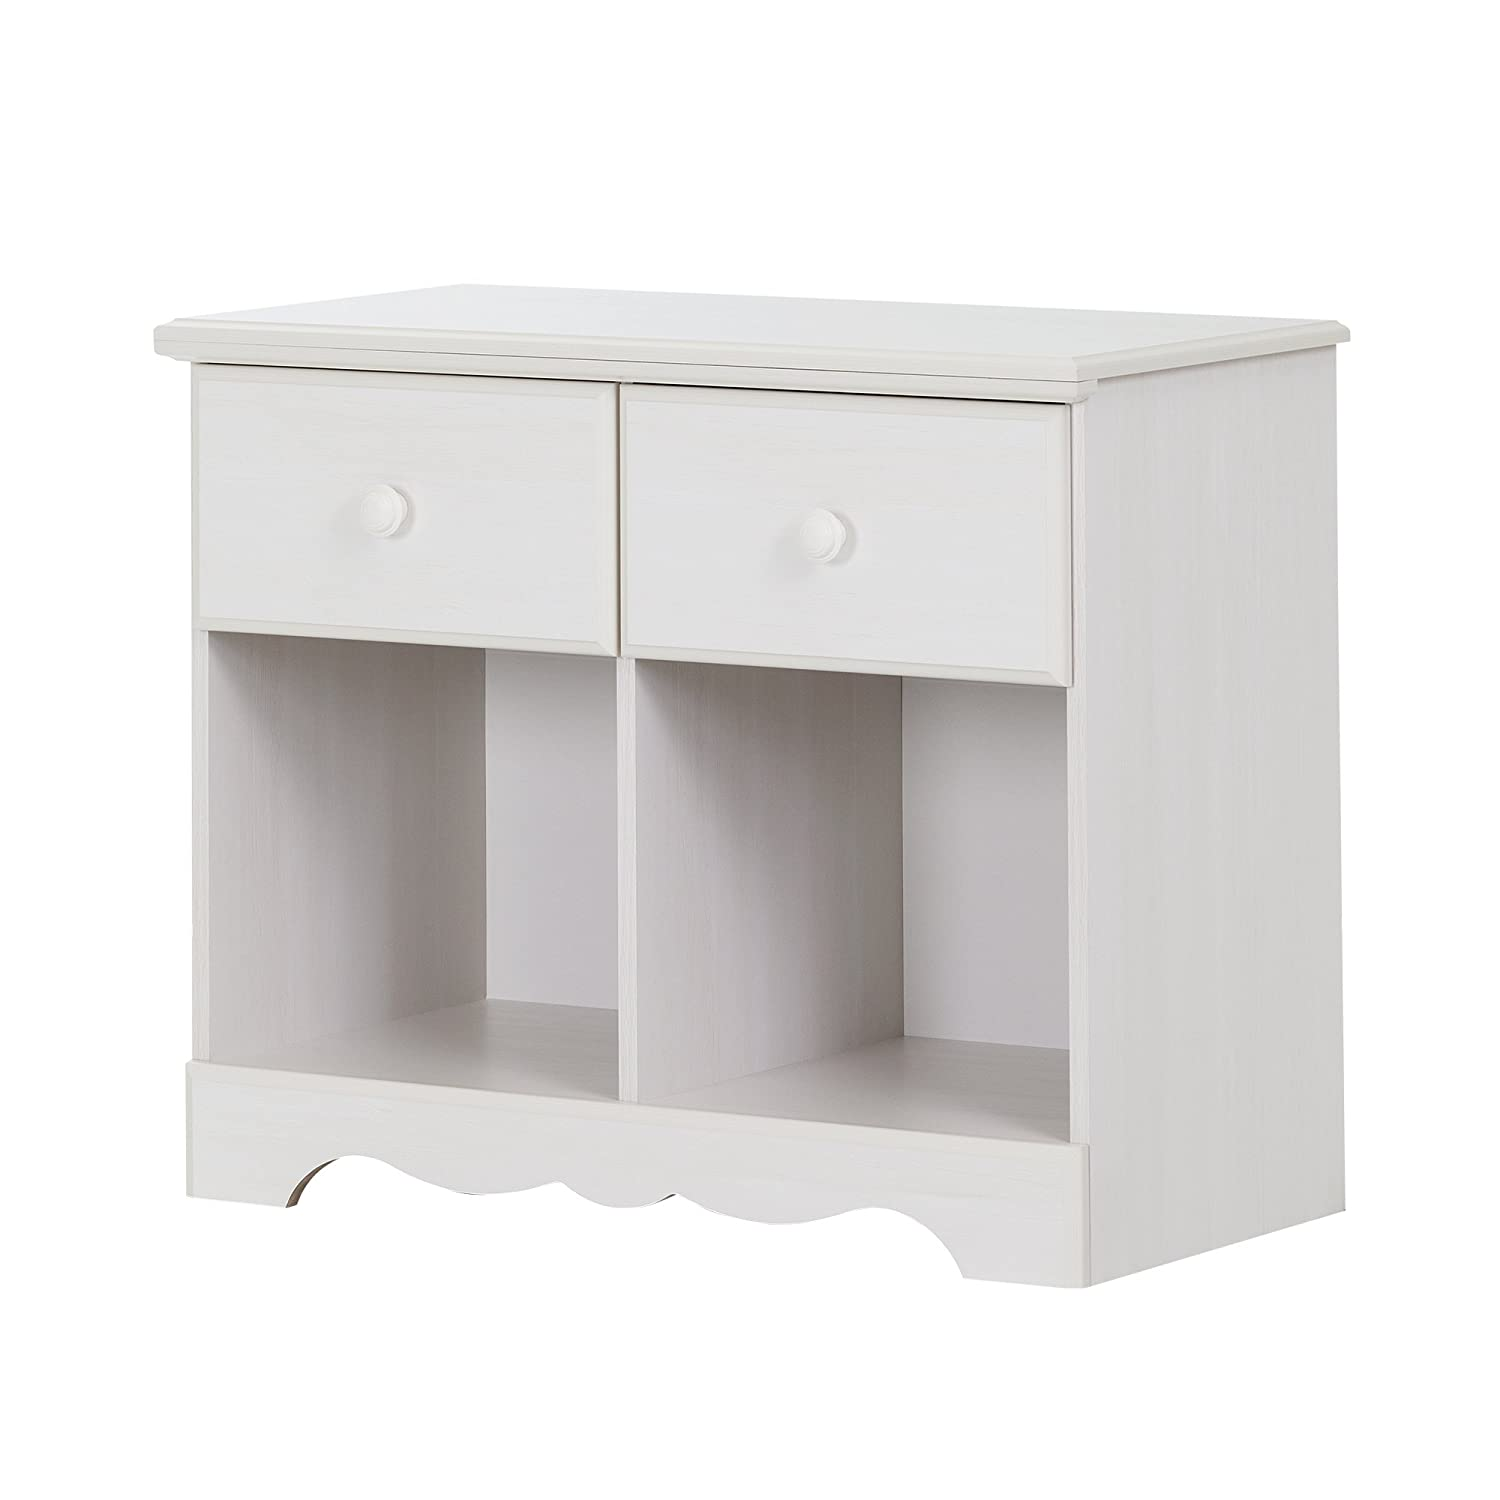 South Shore Furniture Summer Breeze 2-Drawer Double Nightstand, Blueberry 10206